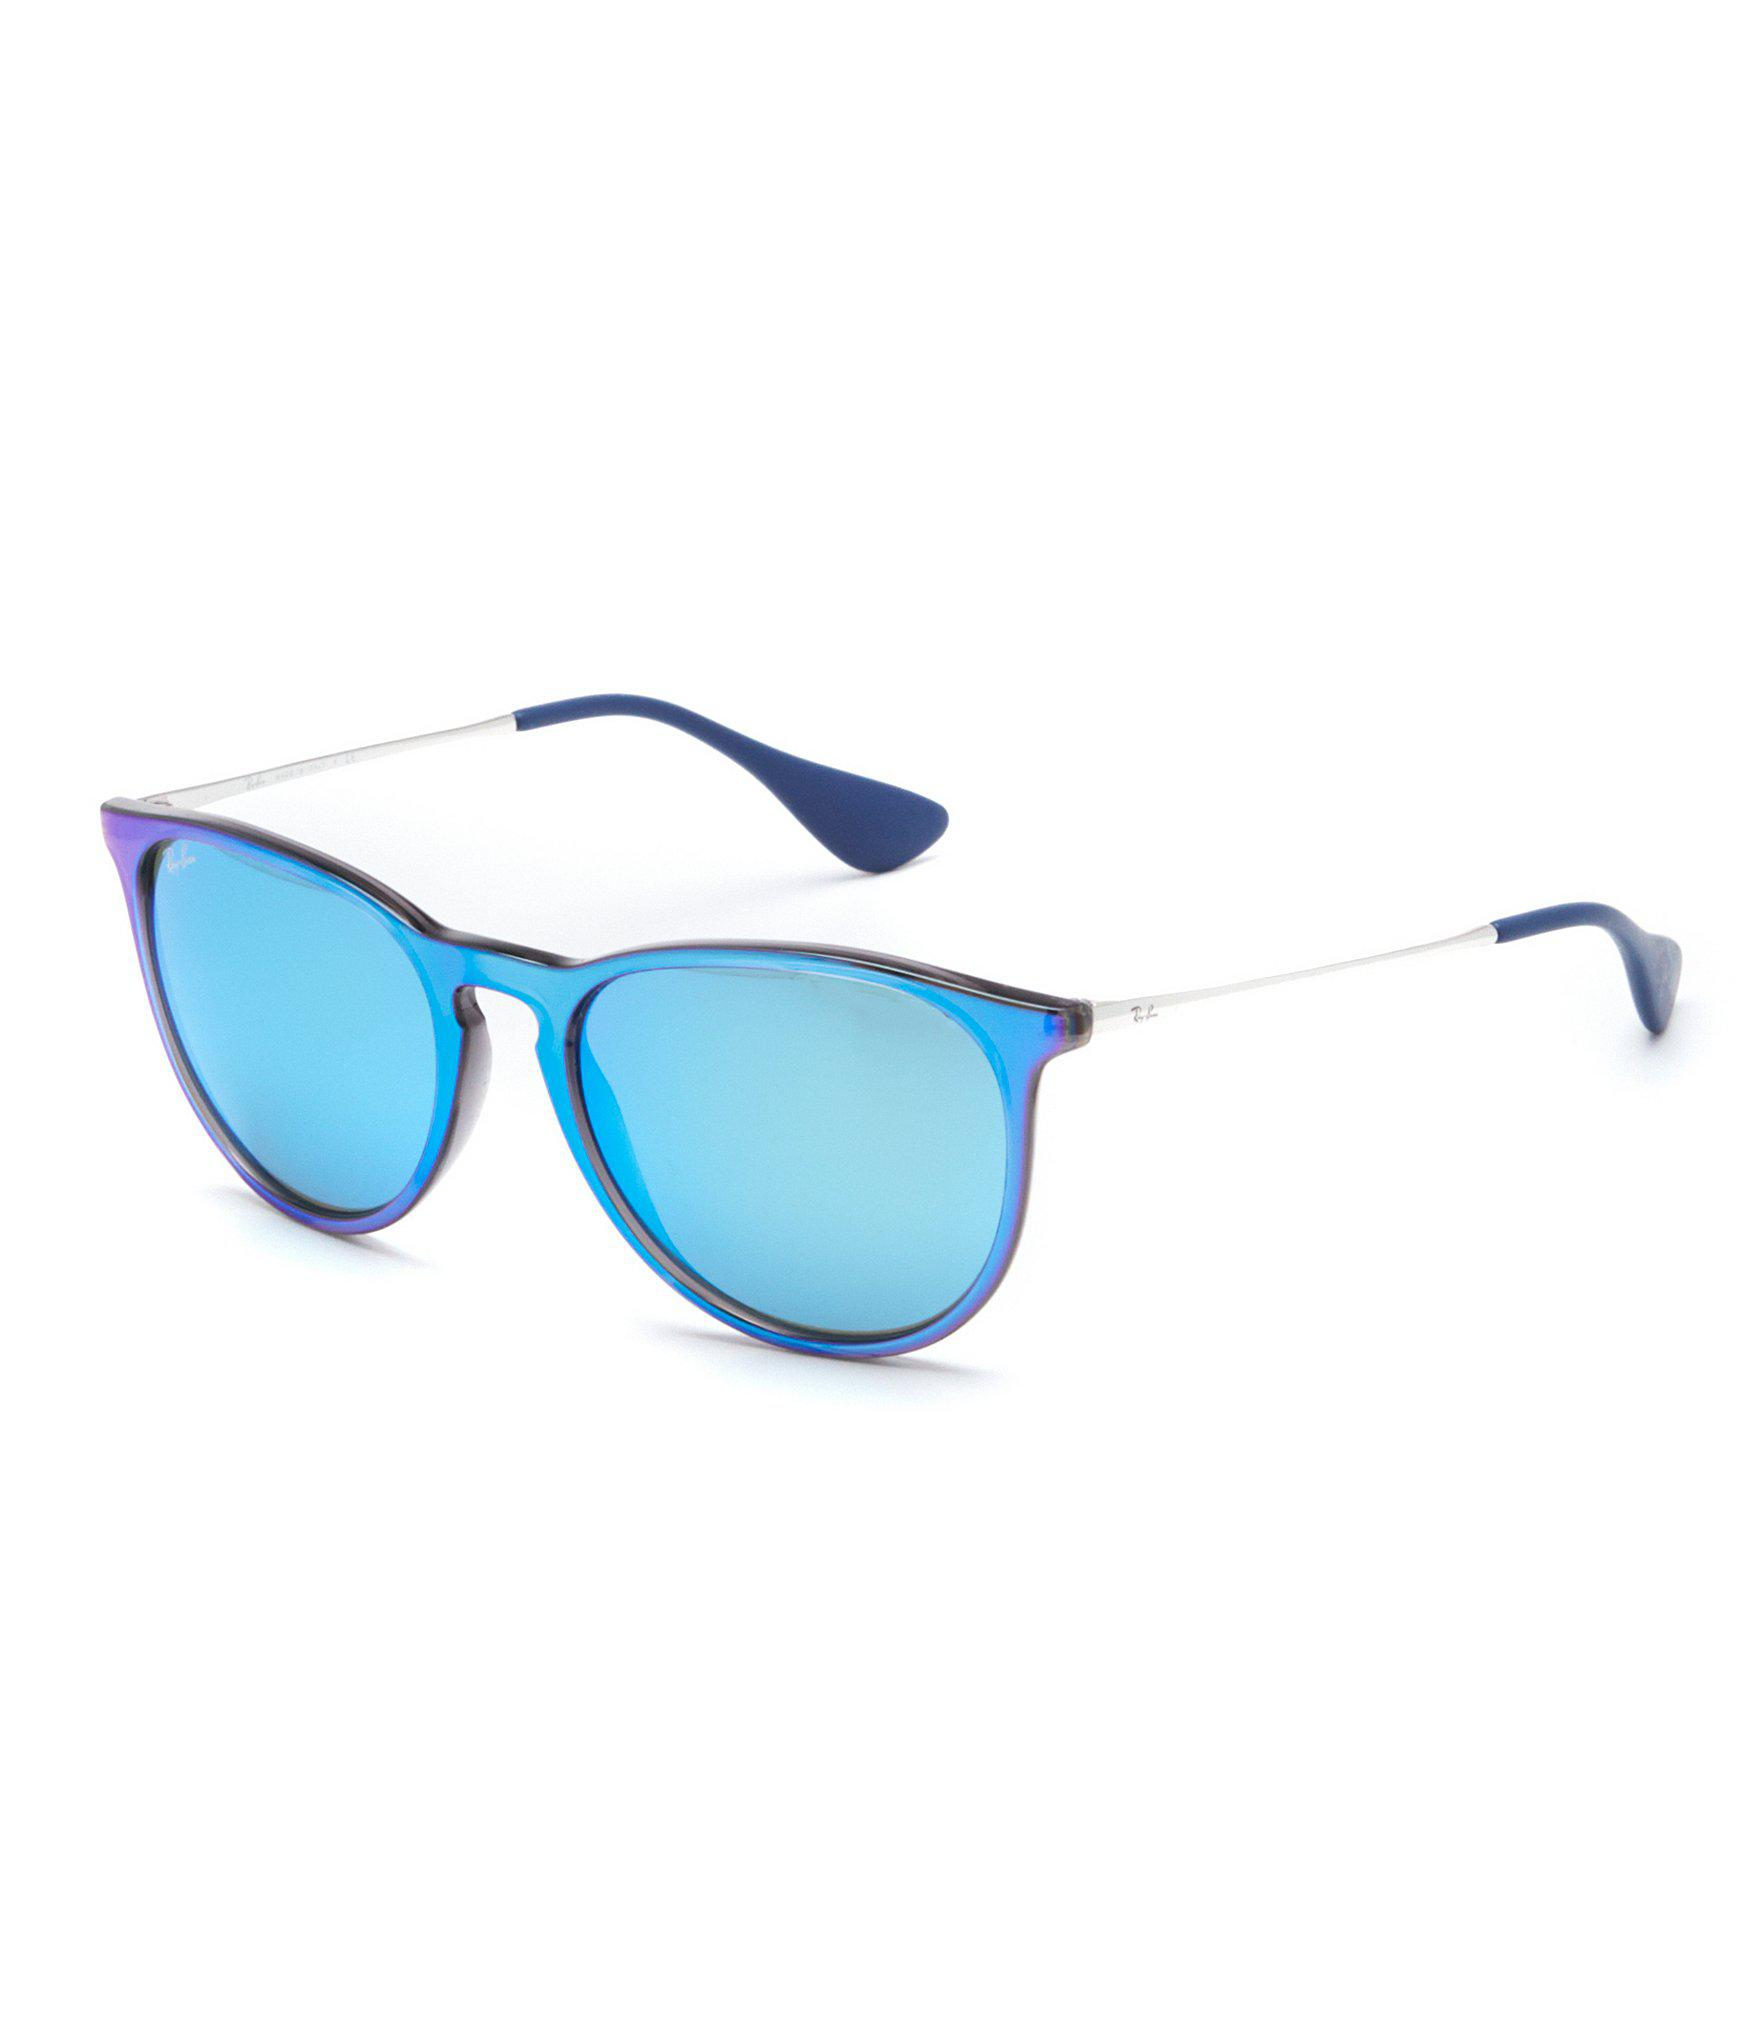 6667c2a5aac Lyst - Ray-Ban Erika Round Mirror Lens Sunglasses in Blue